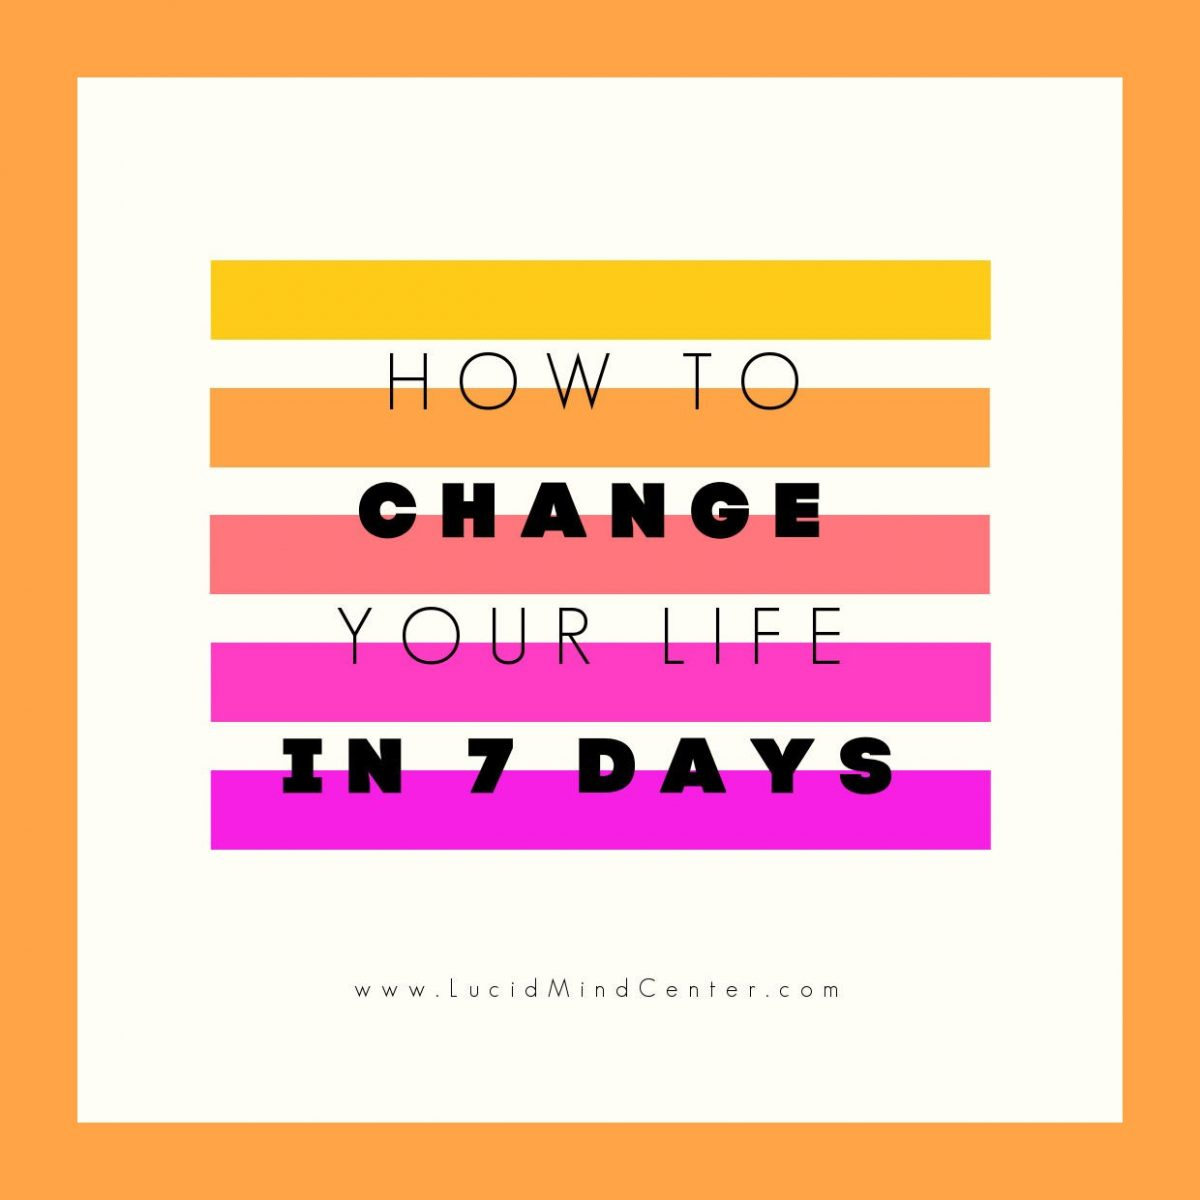 How To Change Your Life in 7 Days Introduction